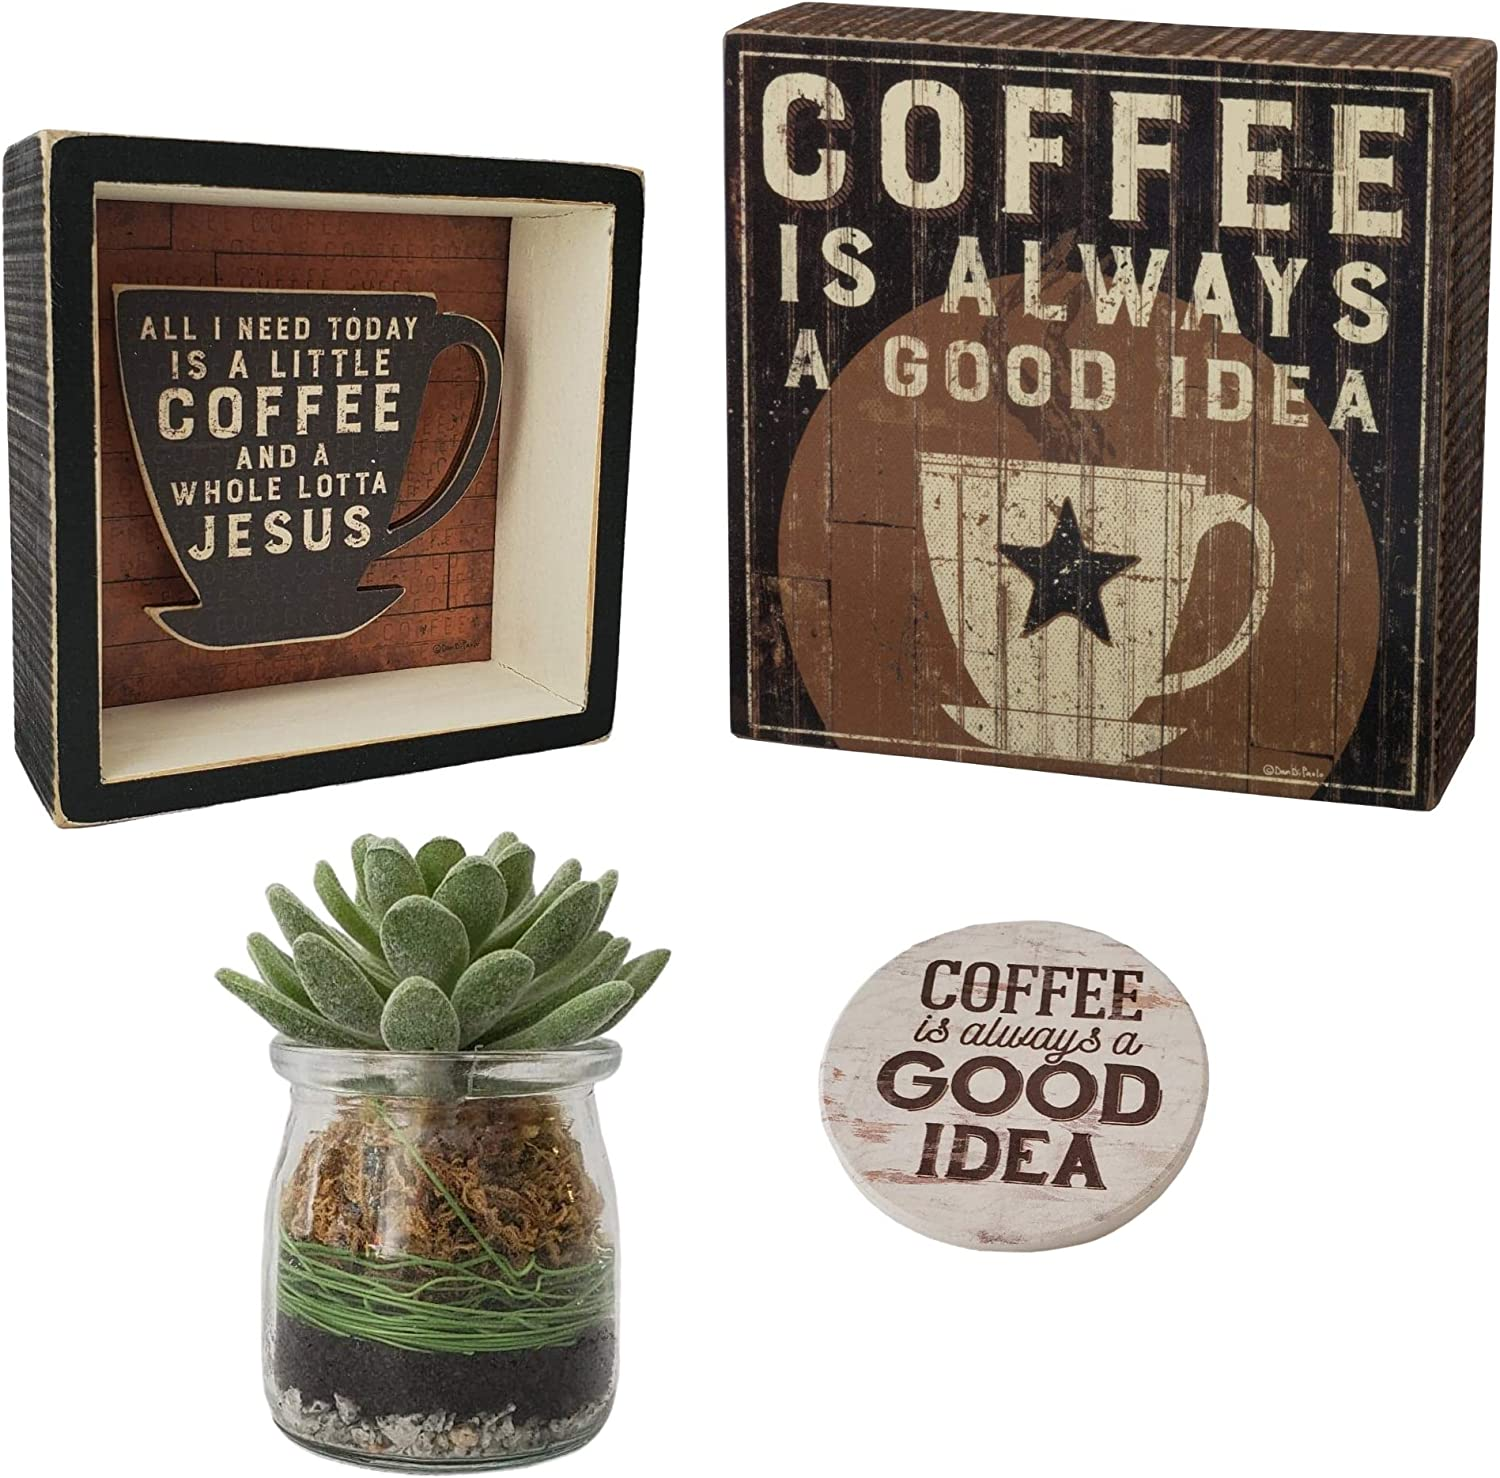 Primitives by Kathy Coffee Signs for Coffee Bar Decor - 4 Piece Set Includes 2 Coffee Sign 1 Faux Succulent & 1 Coffee Decor Spoon Rest